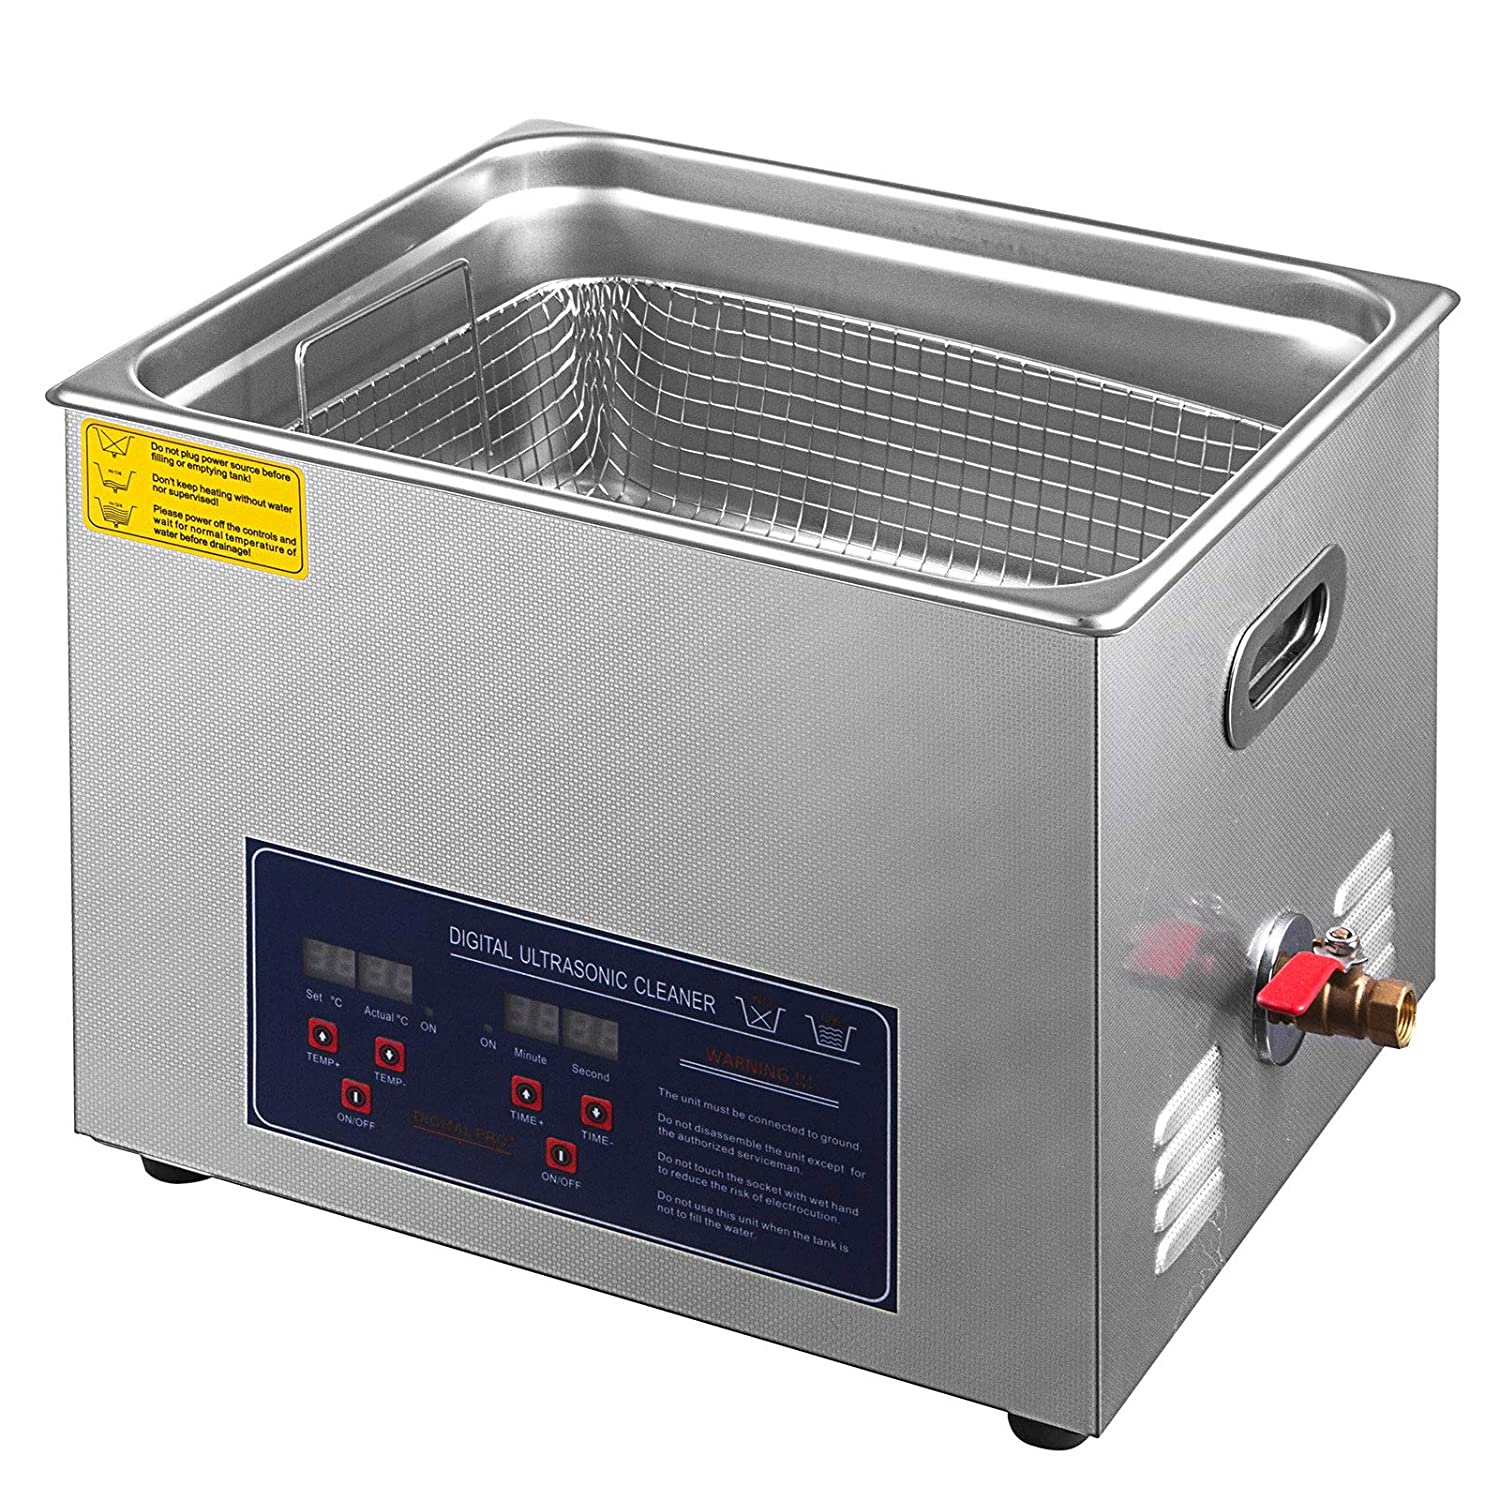 Hihone Ultrasonic Cleaner Ultrasound Stainless Cleaning Ranking TOP7 Atlanta Mall Machine